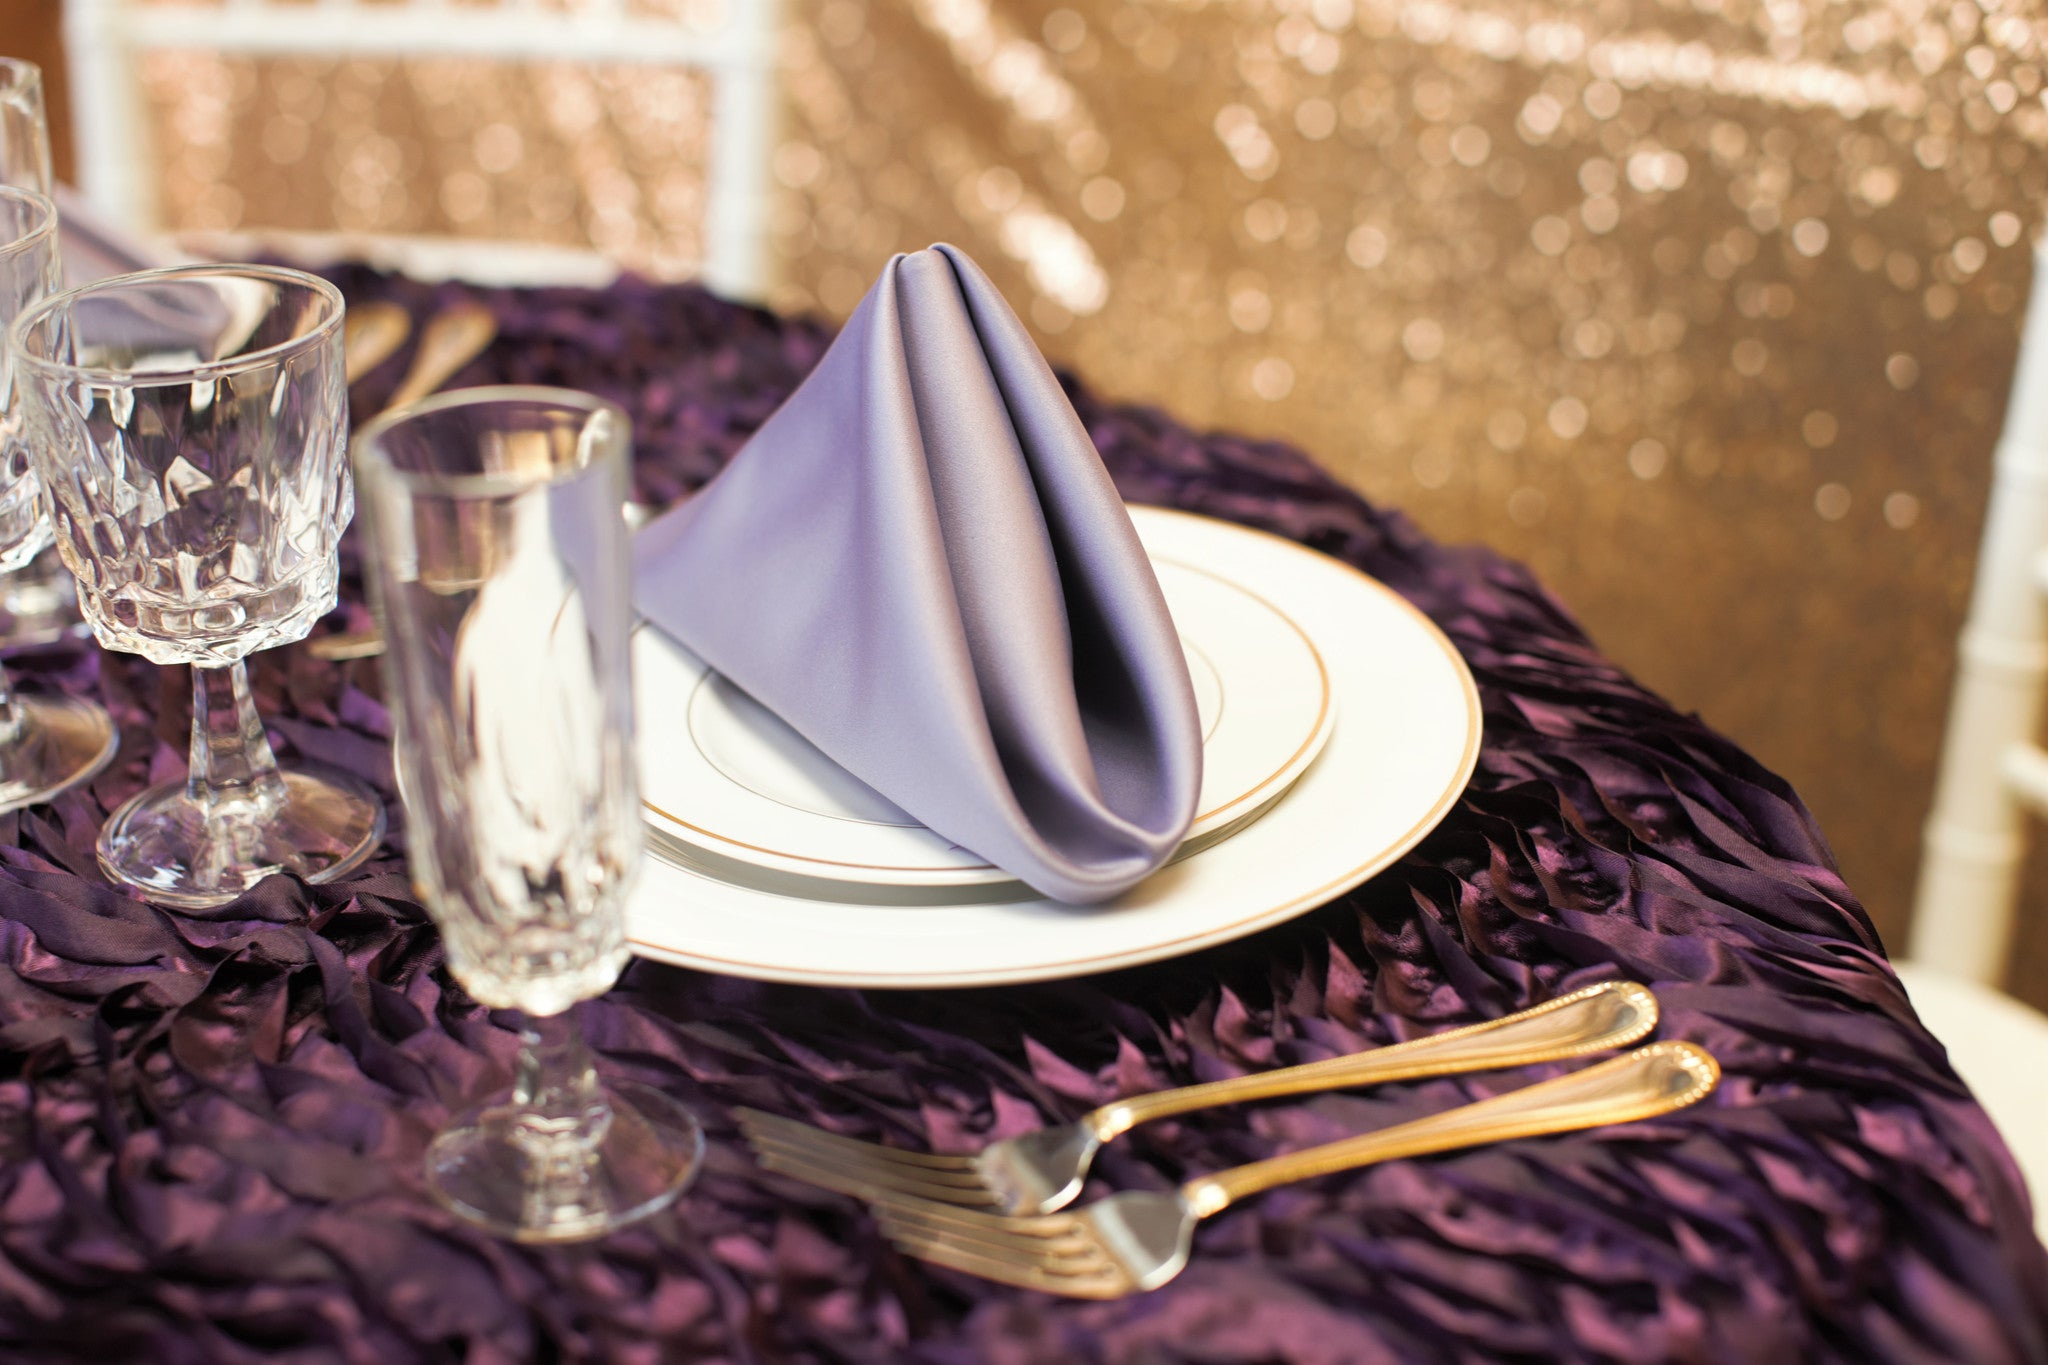 Linen - Plum Waves - Main Street Weddings & Events